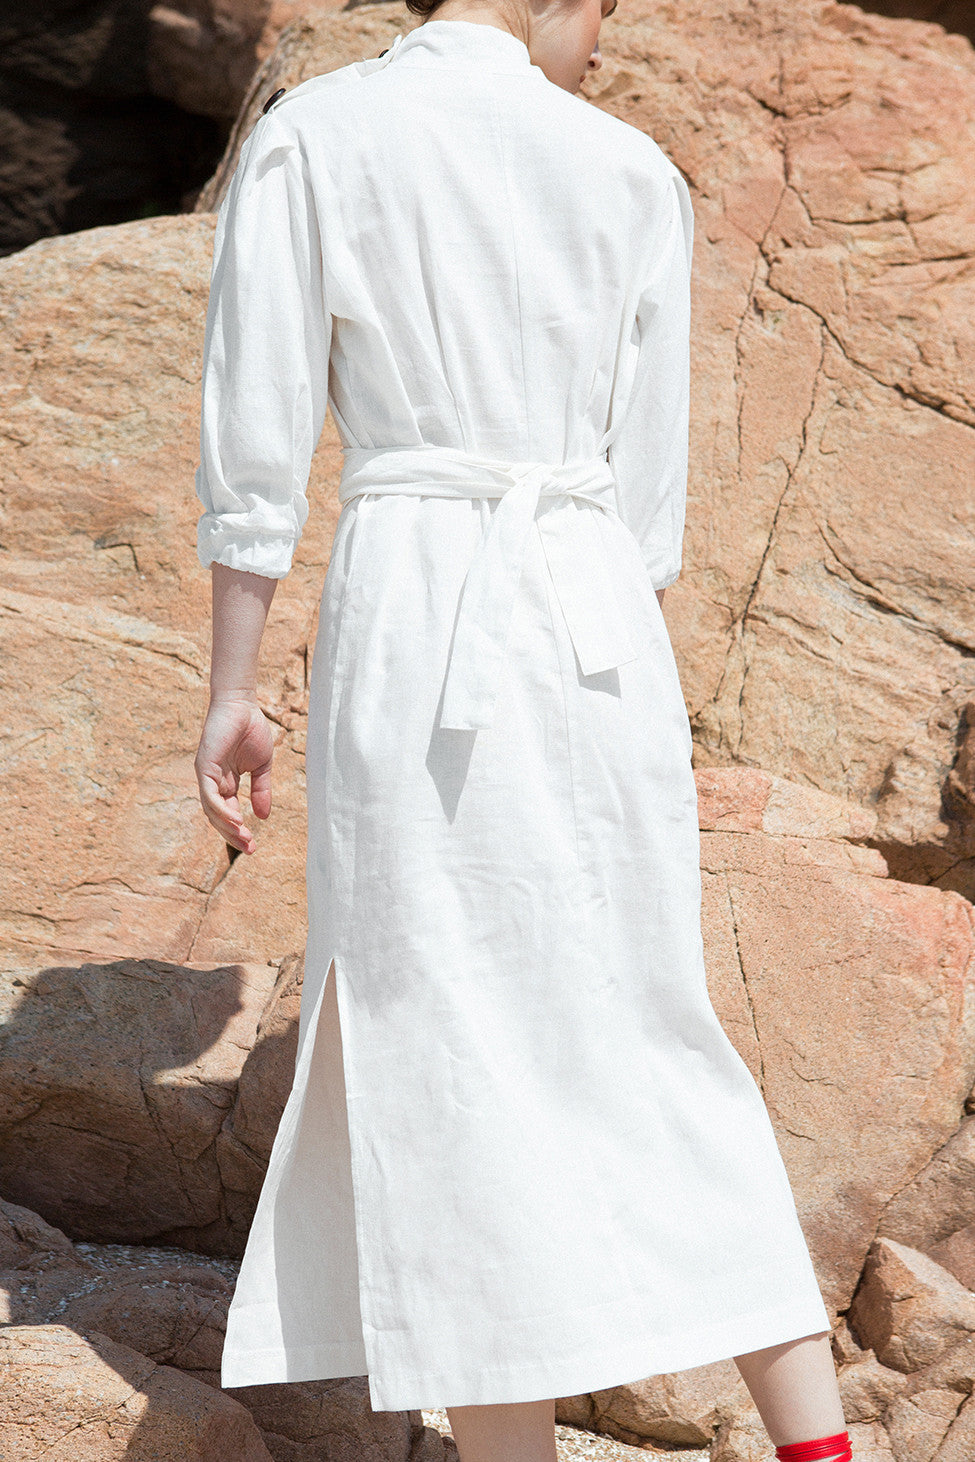 The Holland Dress featuring square neckline with oversized wood buttons, 3/4 sleeves with ruched cuffs, unmovable self tie belt, side slits. Pull on.